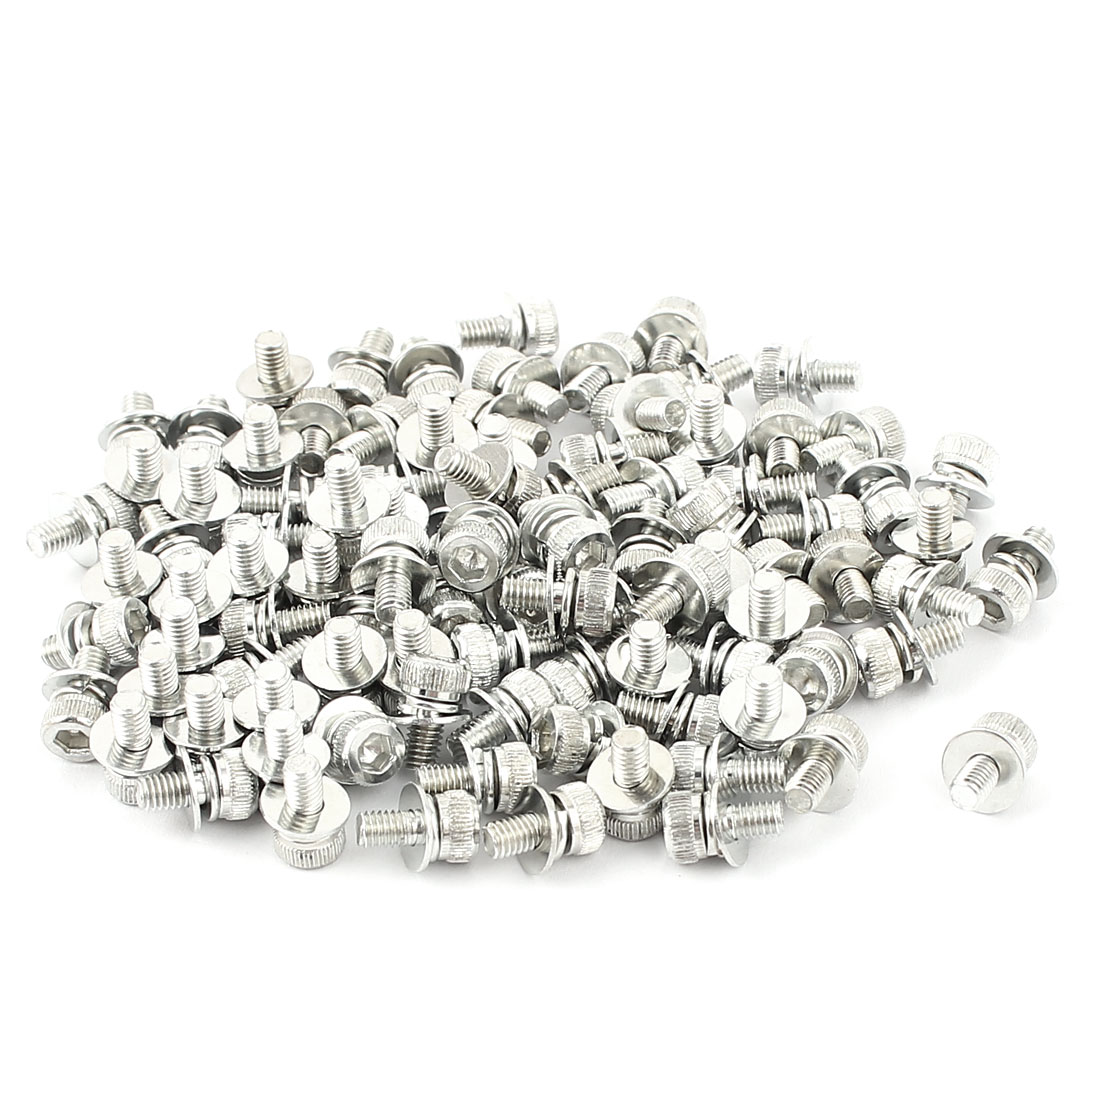 M3x6mmx7mm Zinc Plated Hex Socket Knurl Head Screws Bolt 100pcs w washers